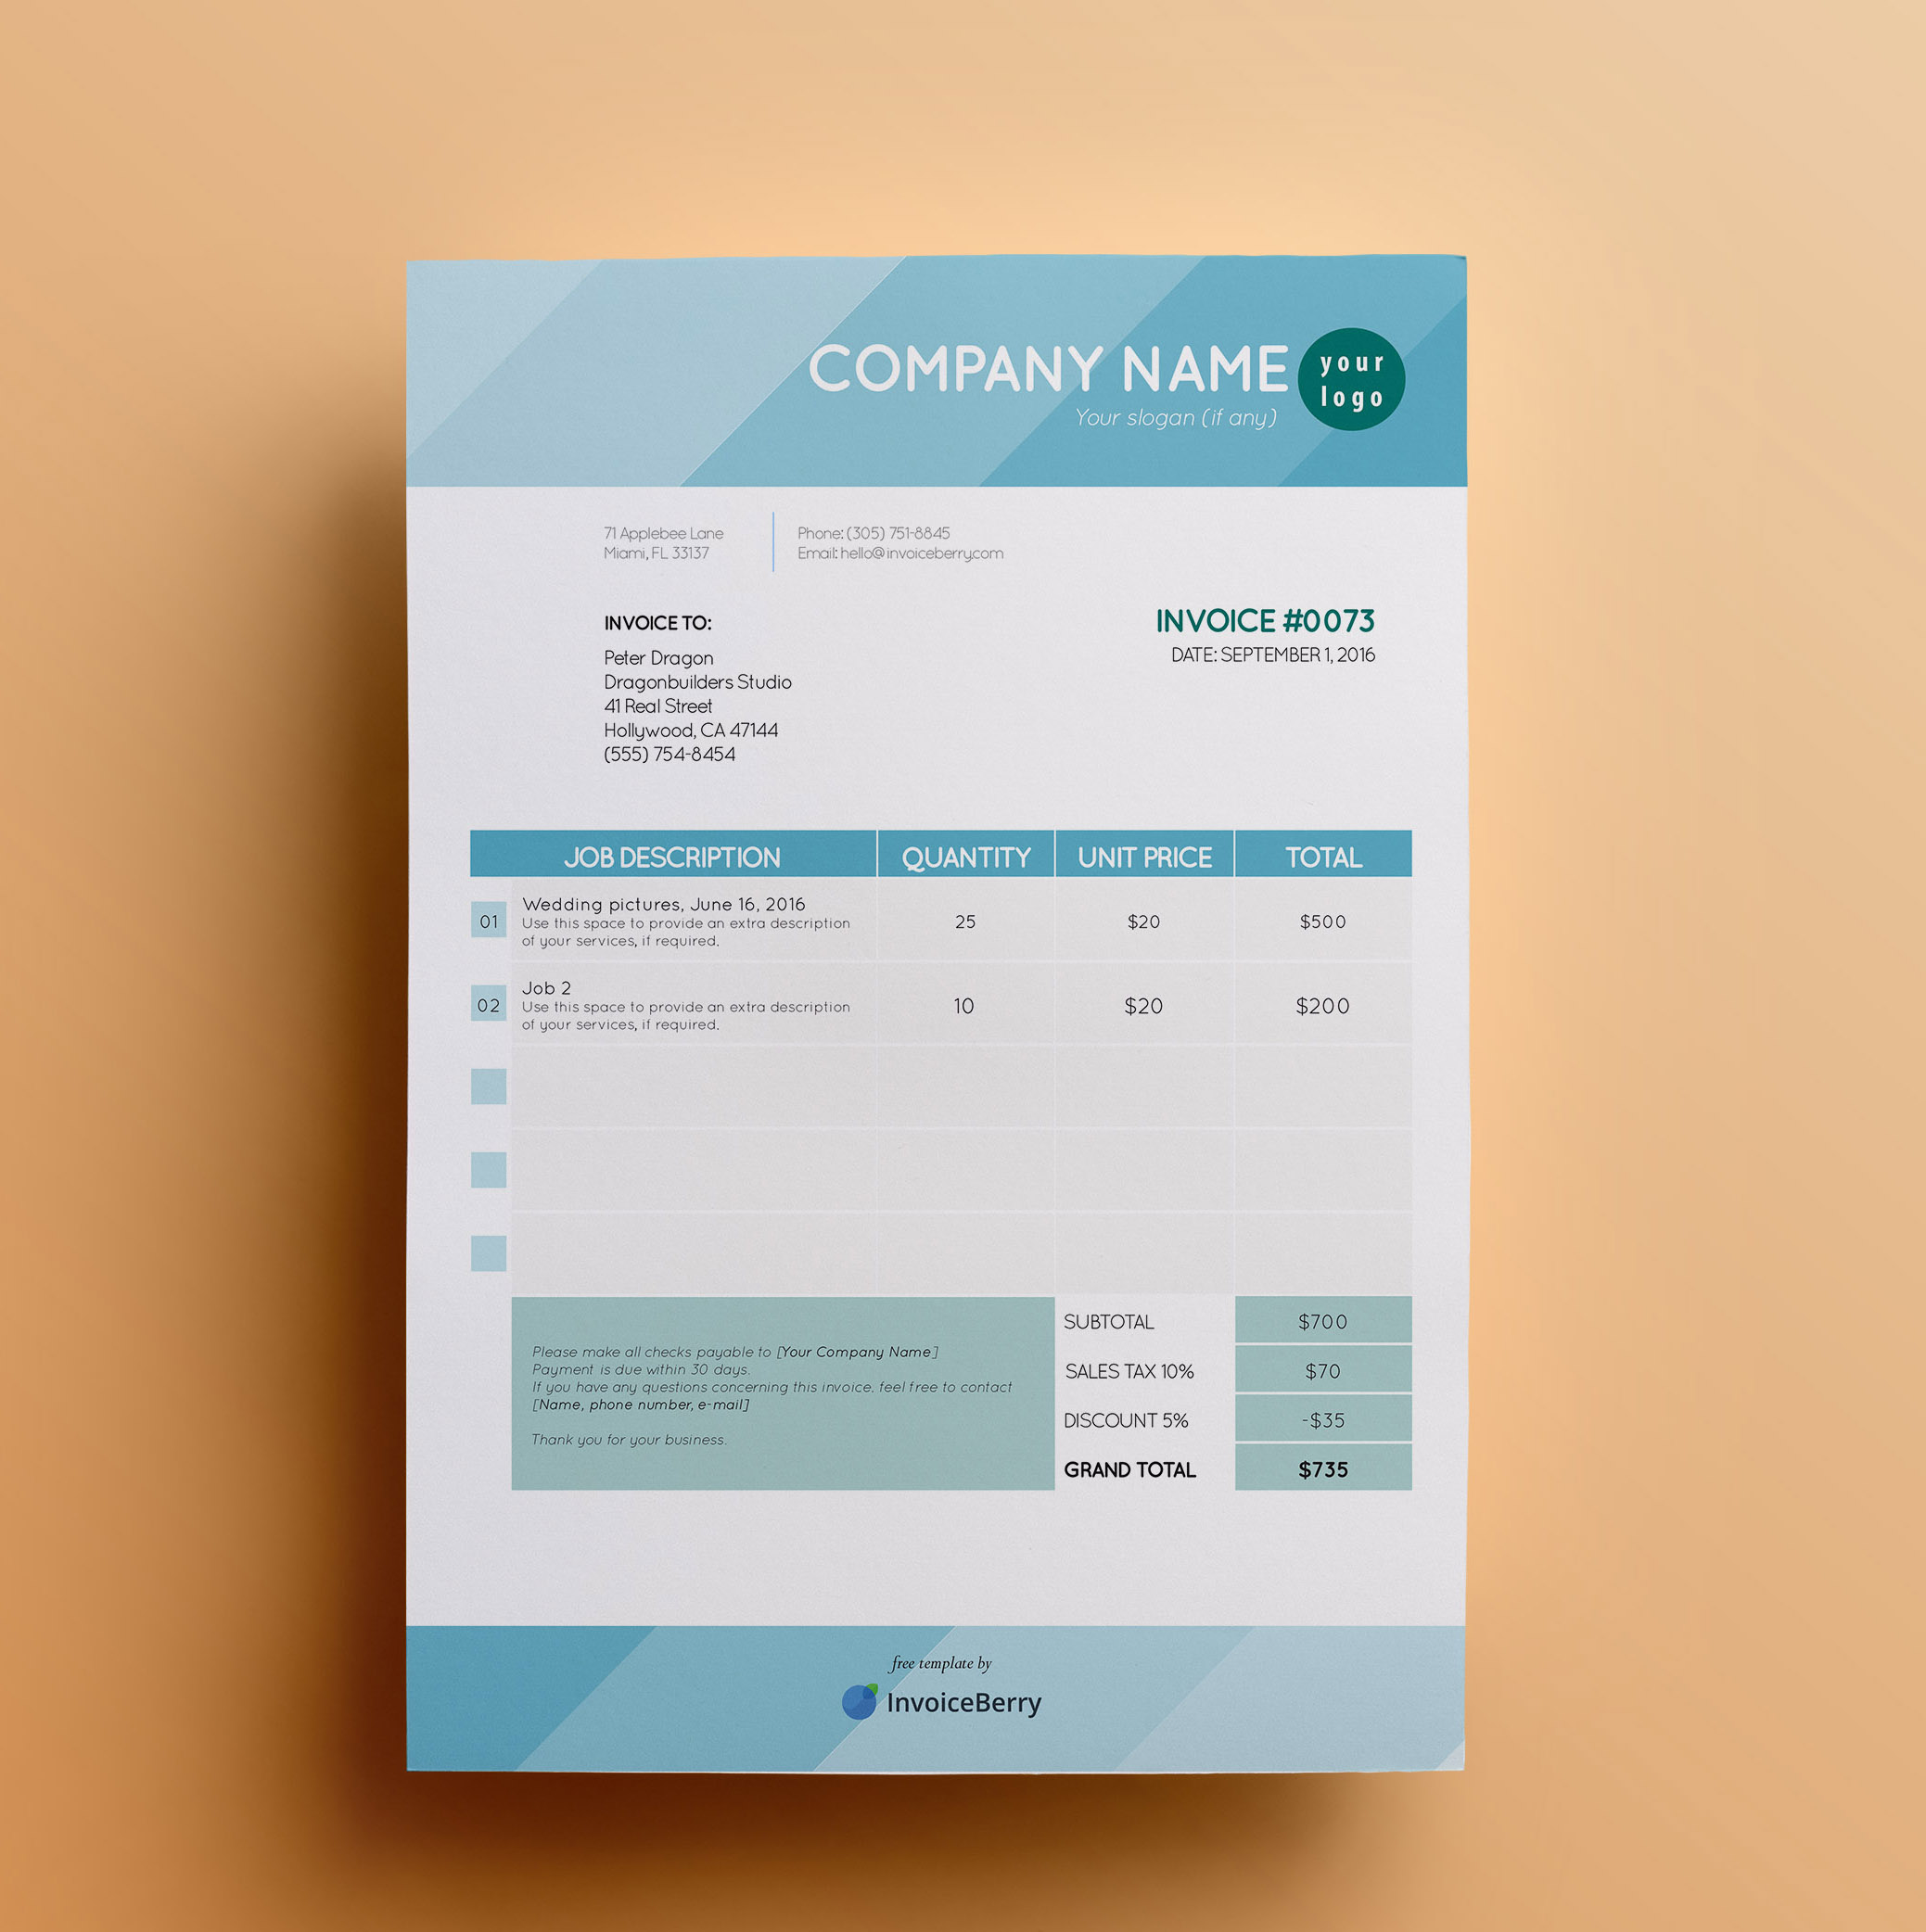 invoice templates by invoiceberry the grid system shadesofblue invoice template by invoiceberry